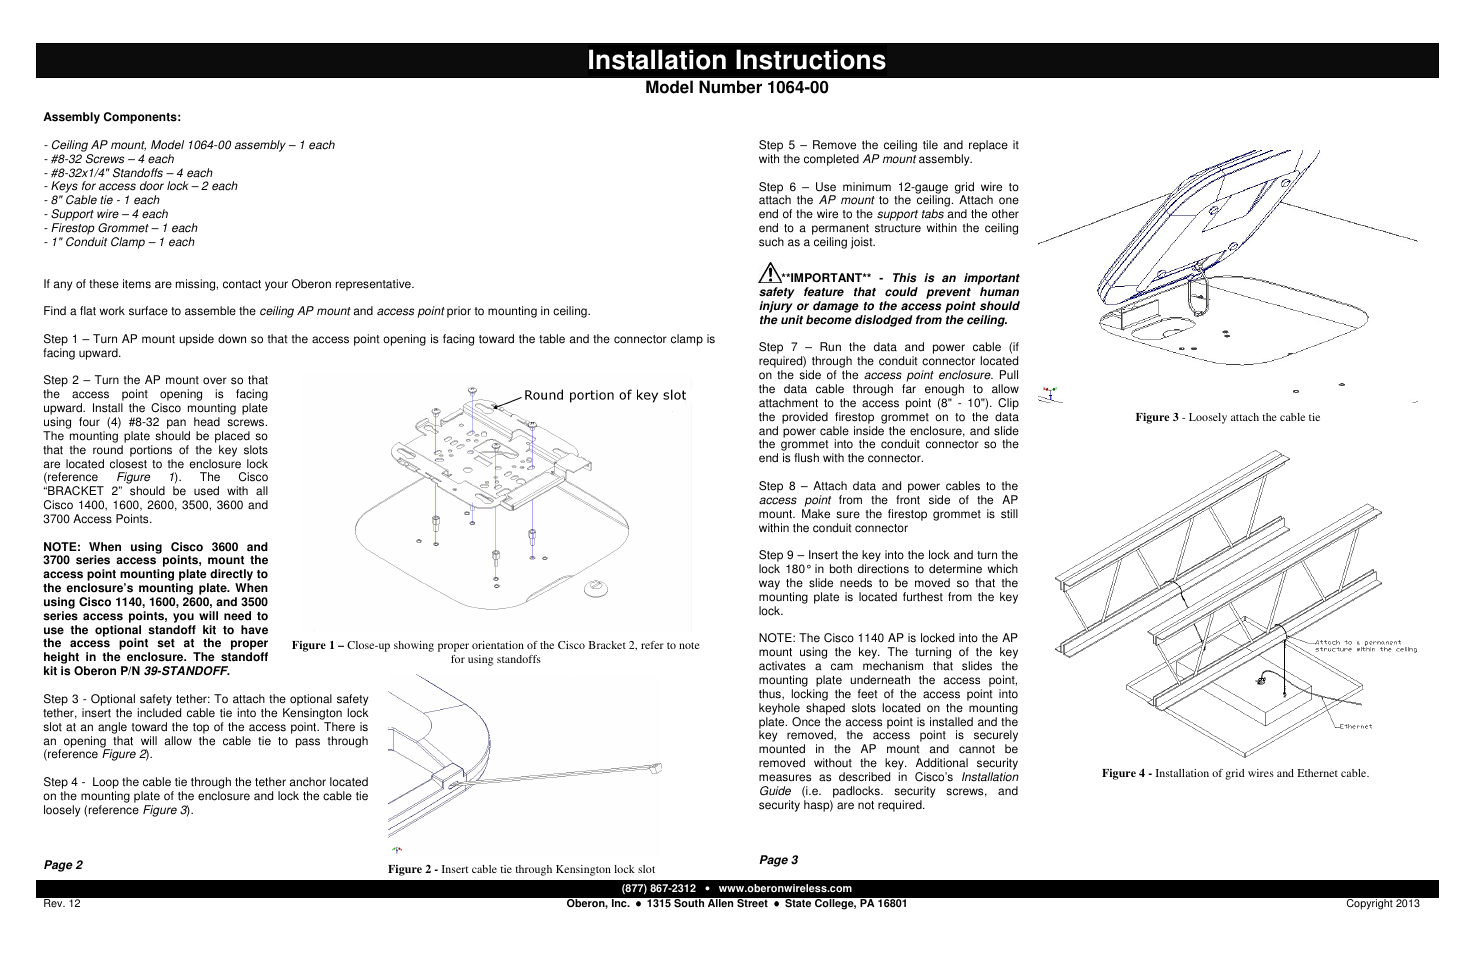 Wiring Diagram Grommet Key Guide And Troubleshooting Of Schematic Symbols Chart Installation Instructions Oberon 1064 00 User Manual Page 2 Rh Manualsdir Com O2 Sensor